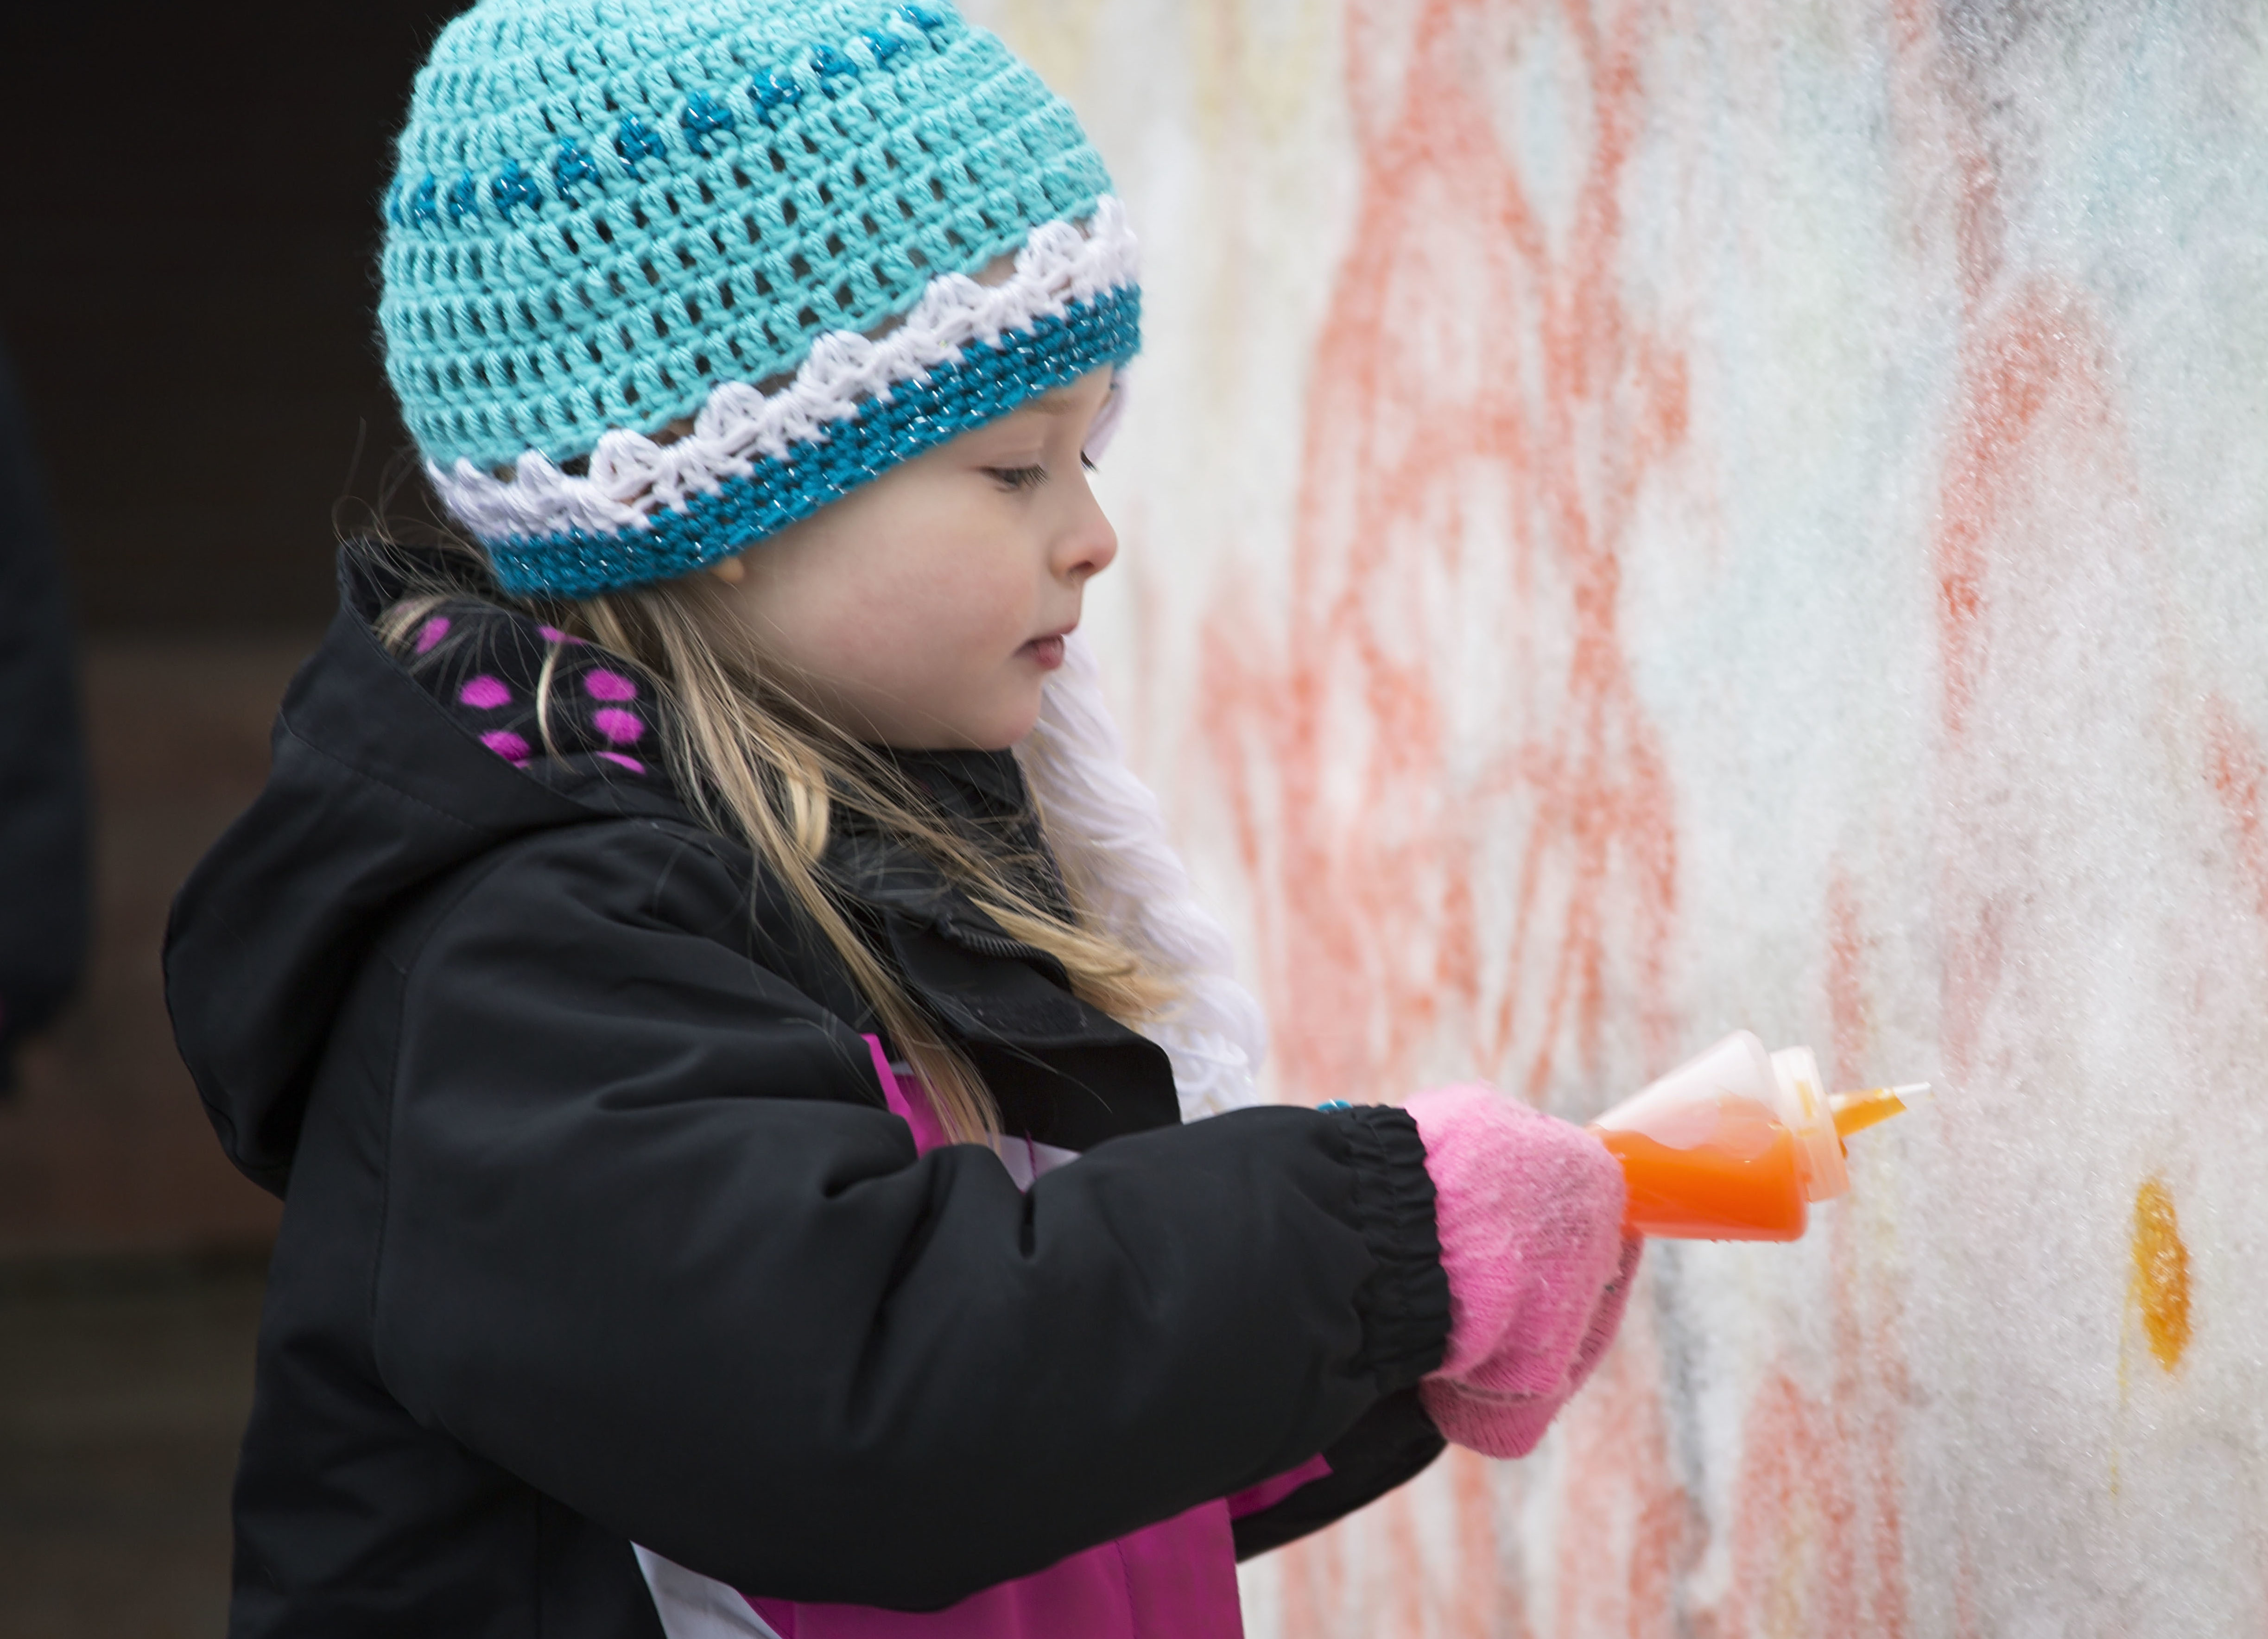 Child painting on snow sculpture